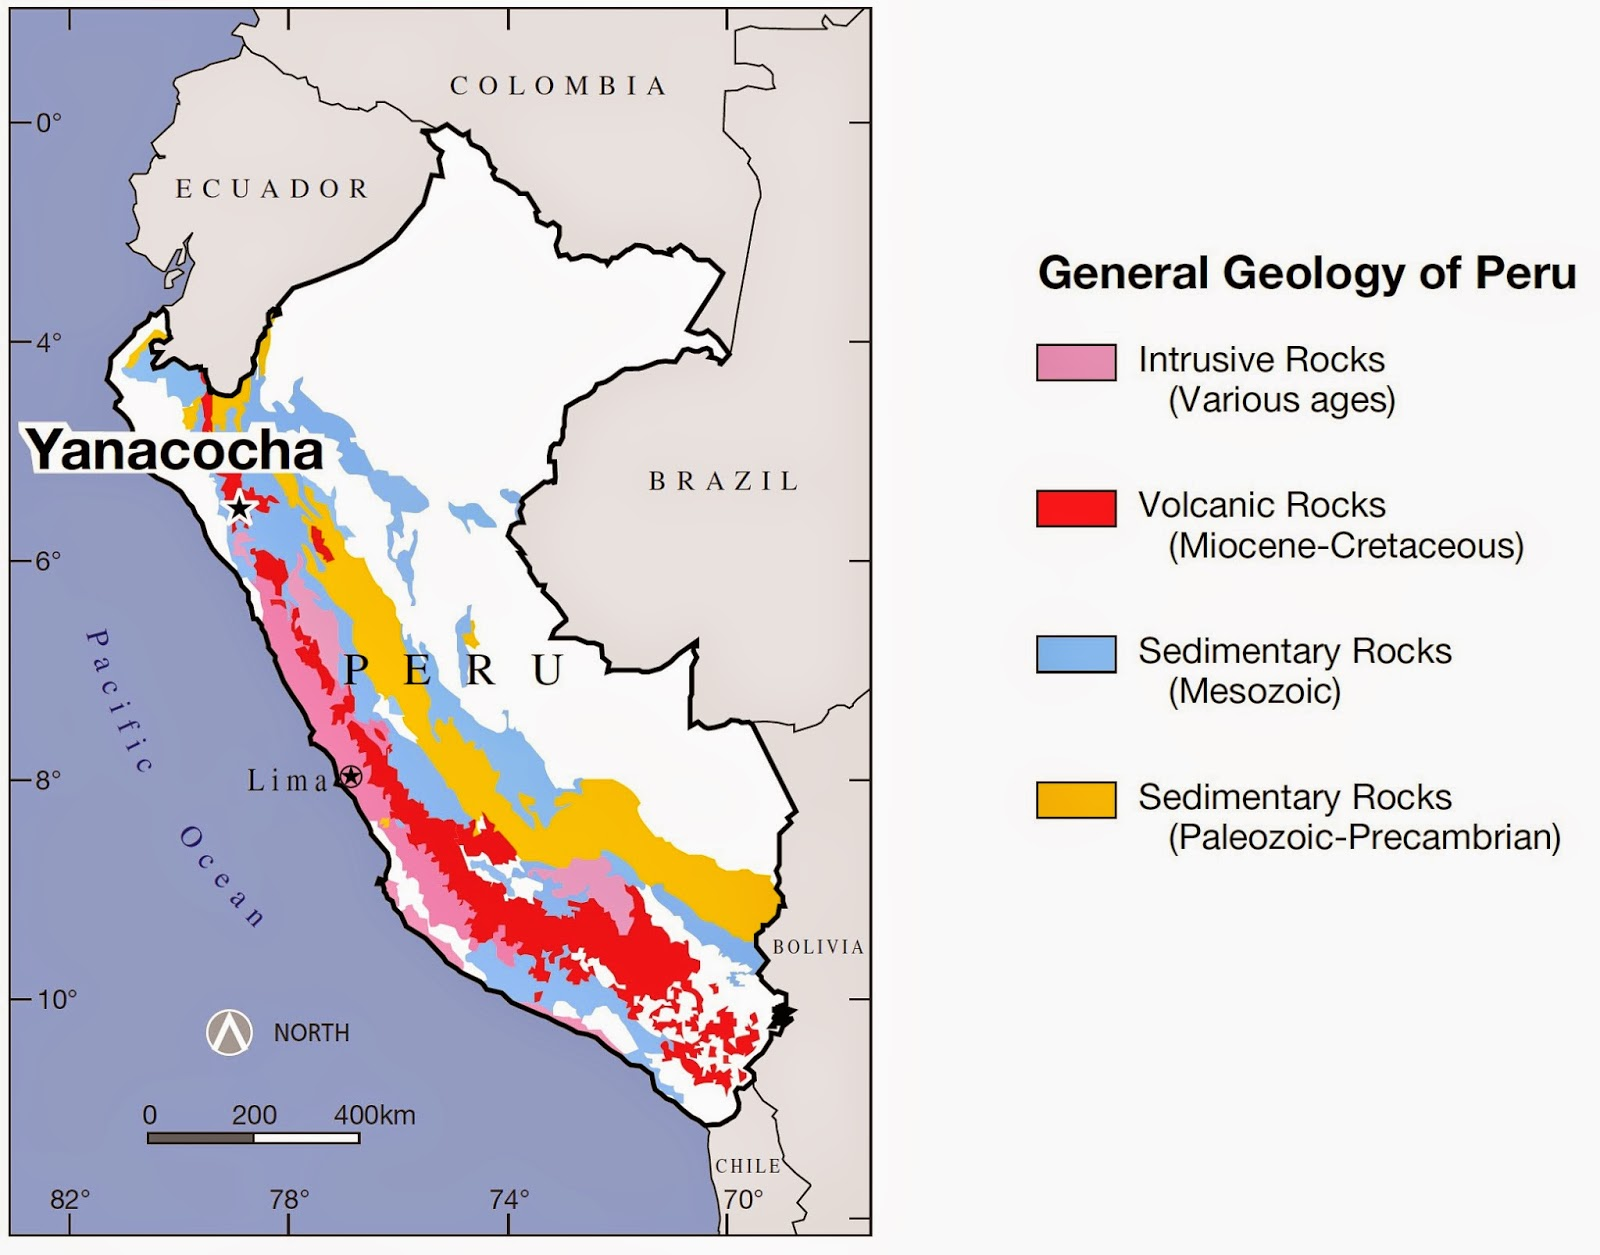 Schematic map showing the geology of western Peru and general location of the Yanacocha mining district.